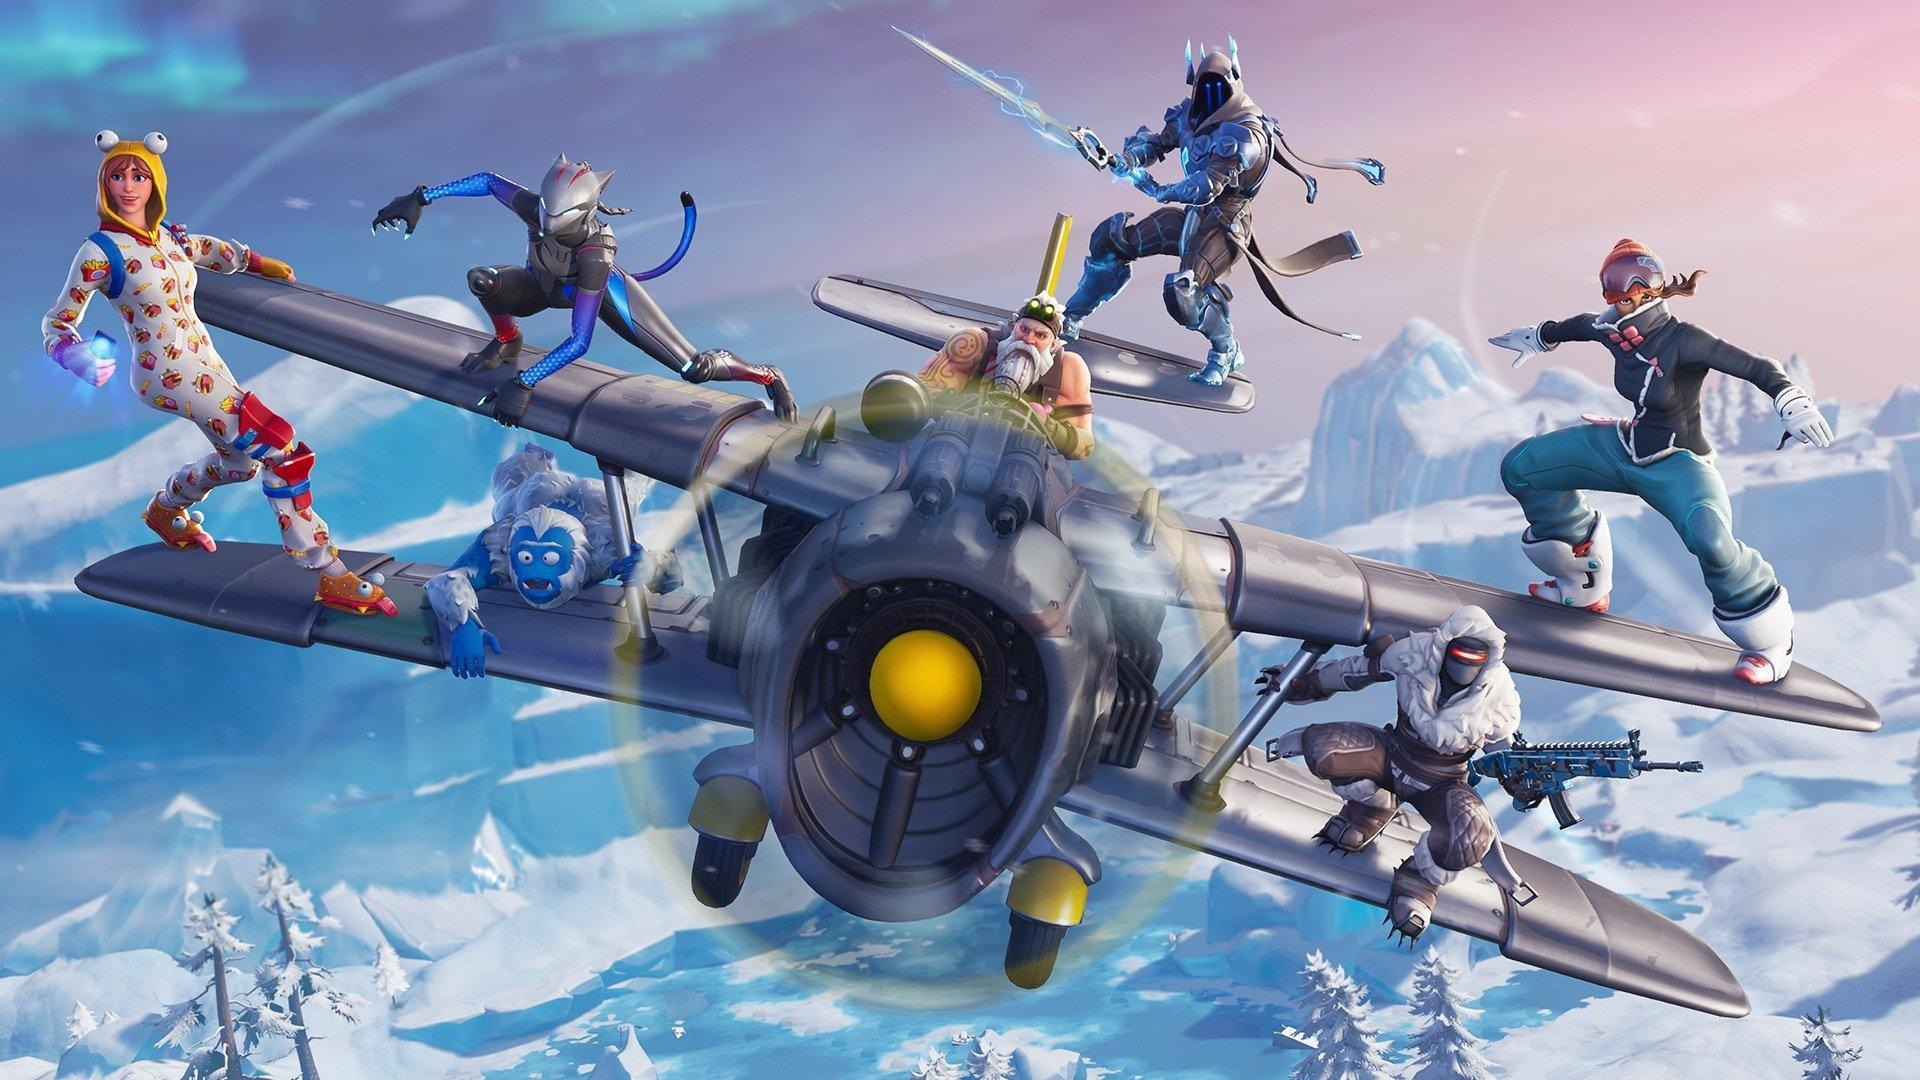 Fortnite Season 7 Adds Snowy Map Terrain, Planes, and Weapon